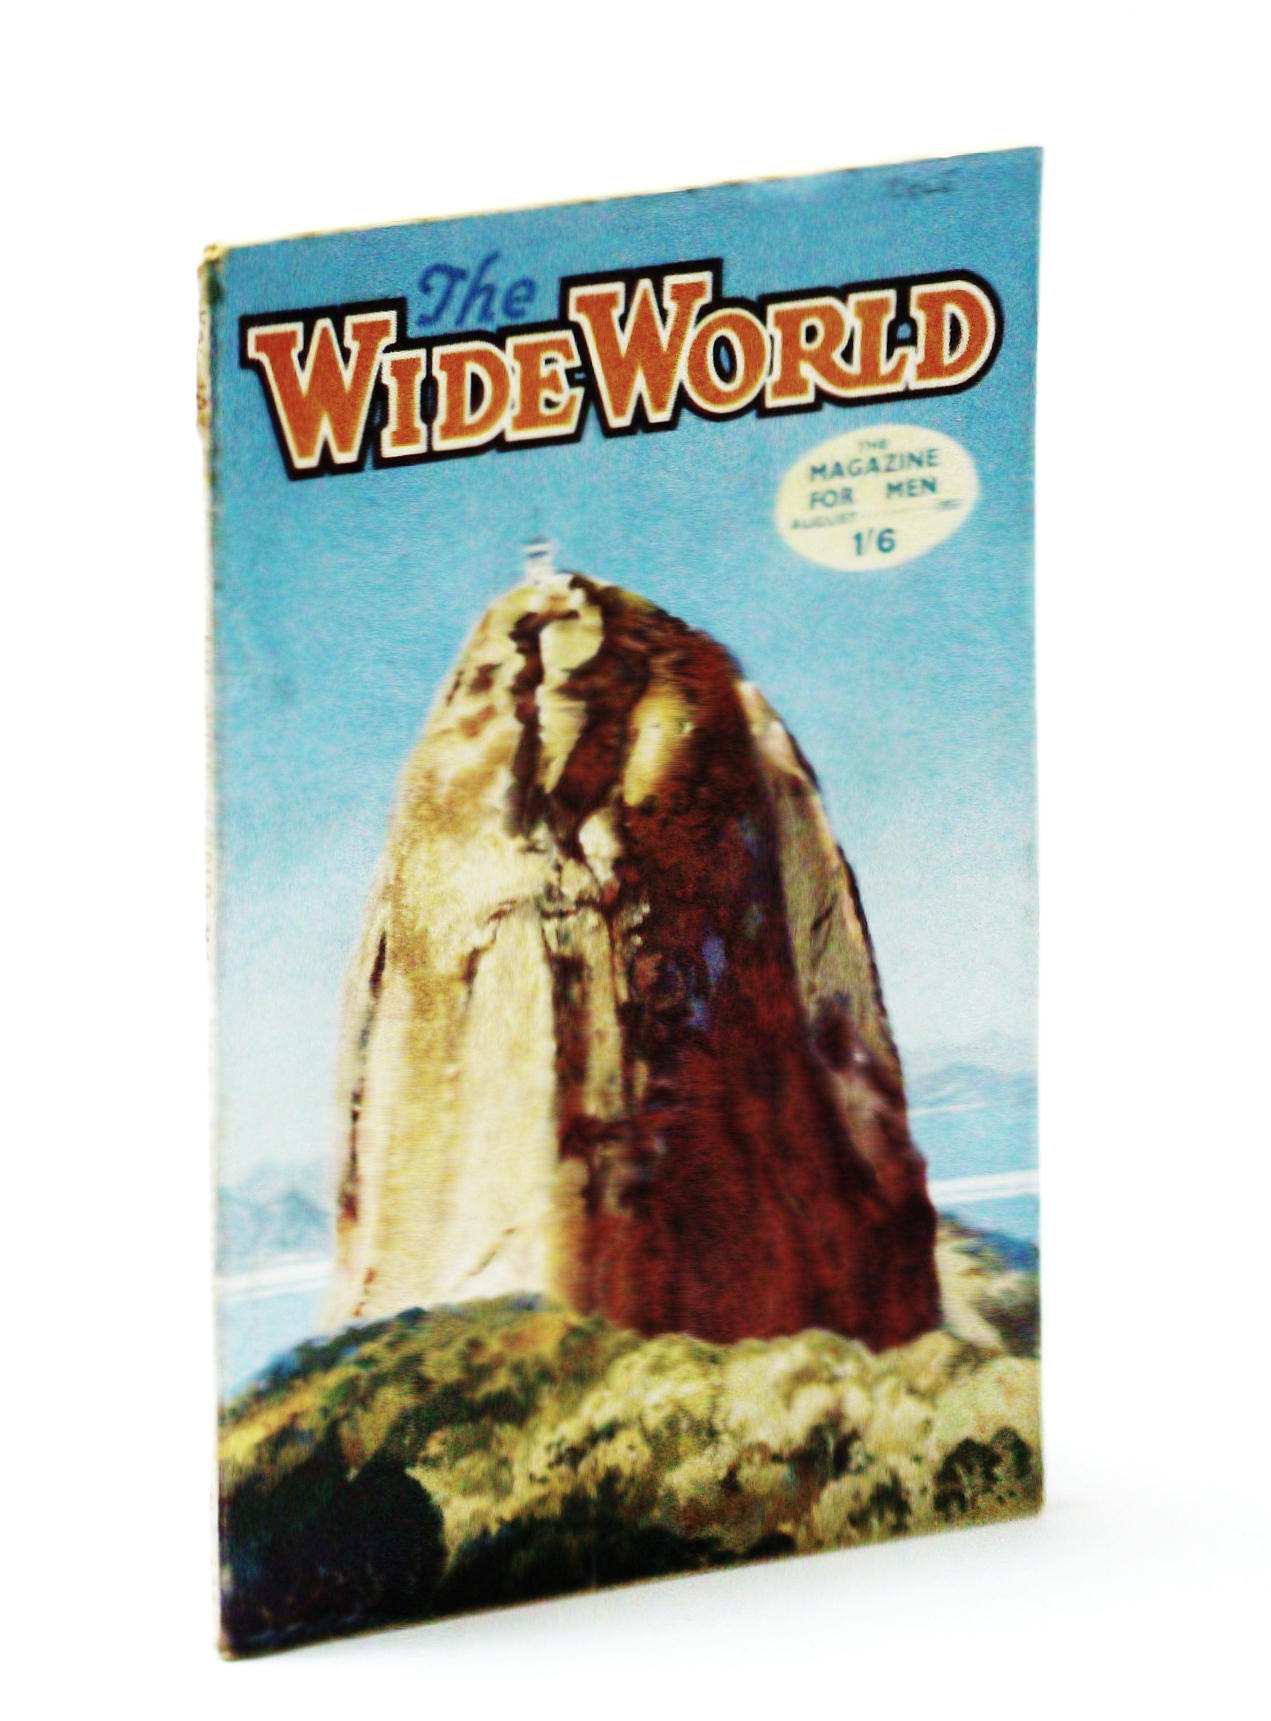 Image for The Wide World, The Magazine For Men, August  (Aug) 1951 -  R.C.M.P. (RCMP) Airmen